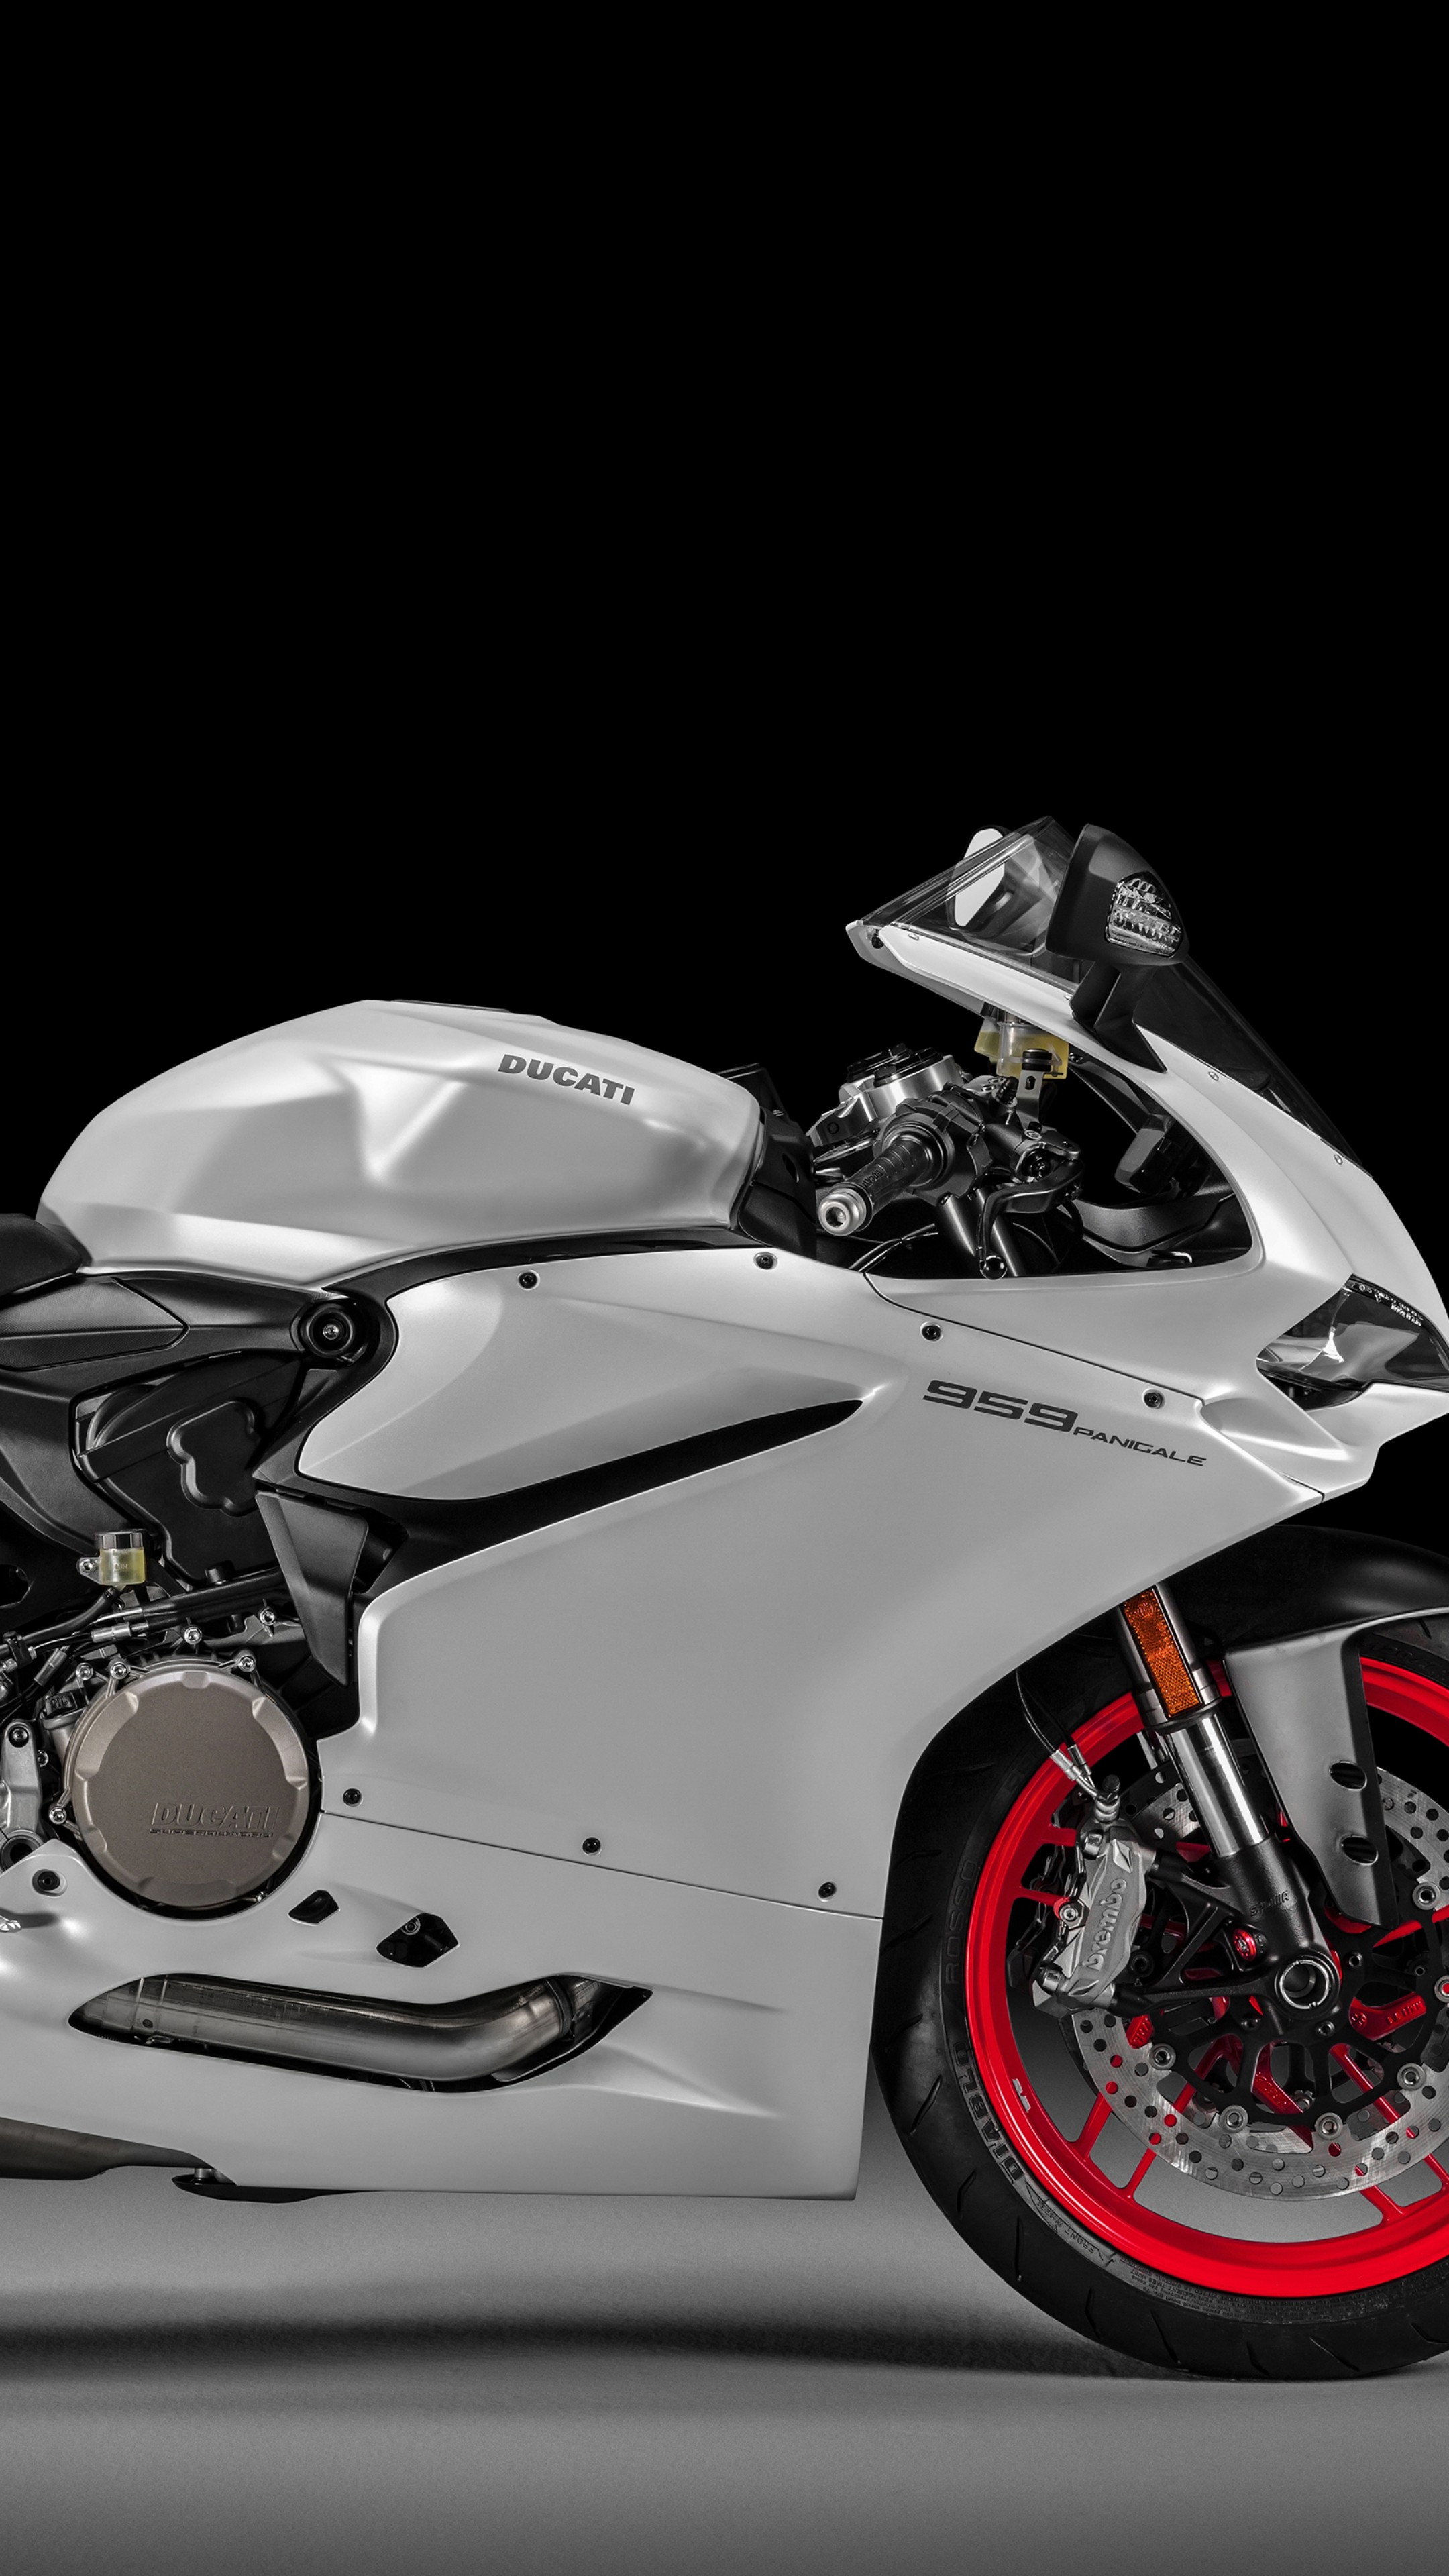 Cool Wallpapers With Quotes About Life Wallpaper Ducati 959 Panigale Turing Bike 2016 Best